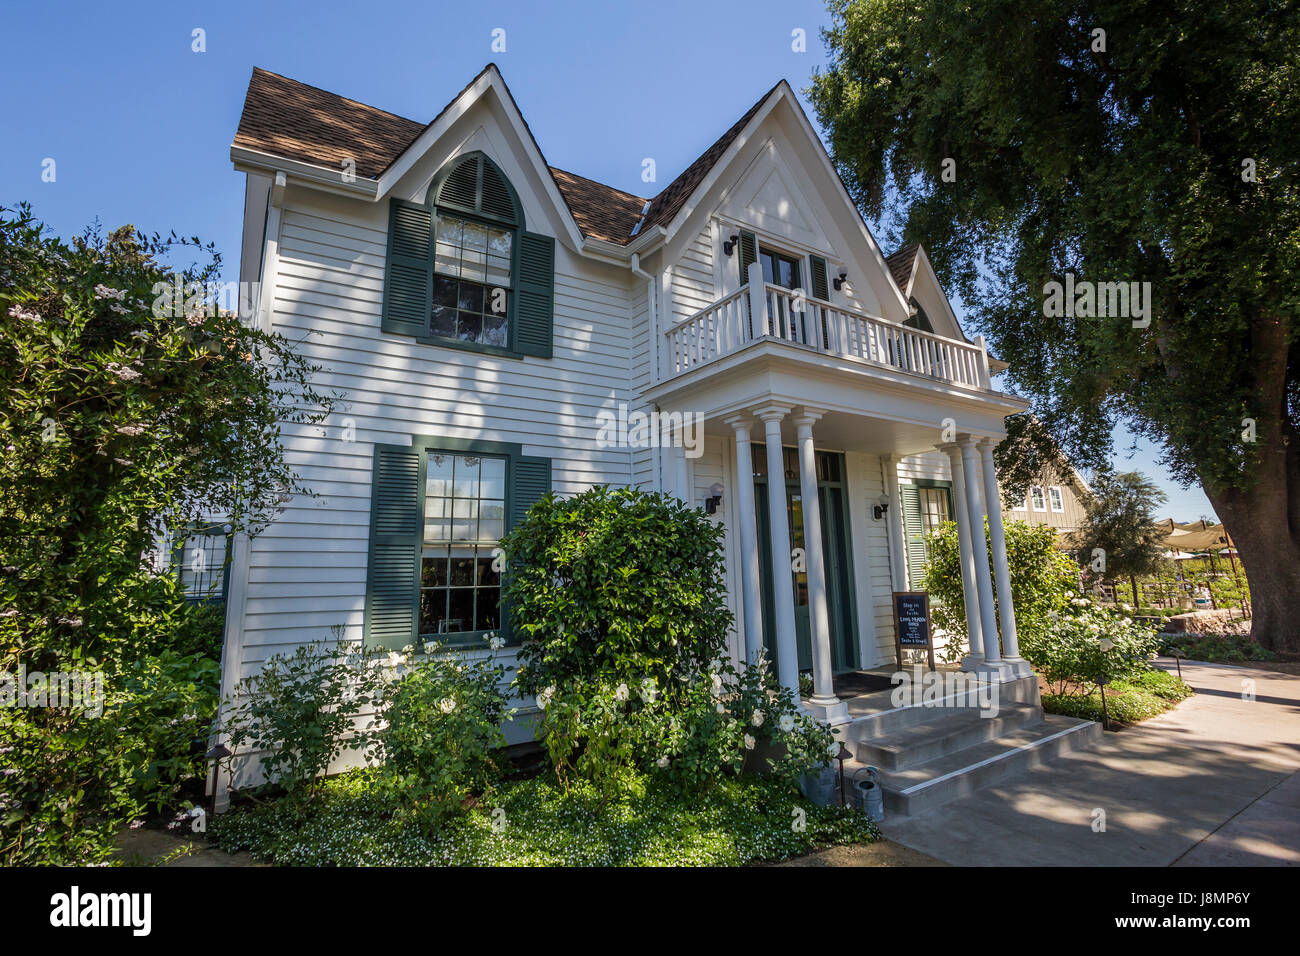 Logan ives house restored gothic revival farmhouse long for Gothic revival farmhouse